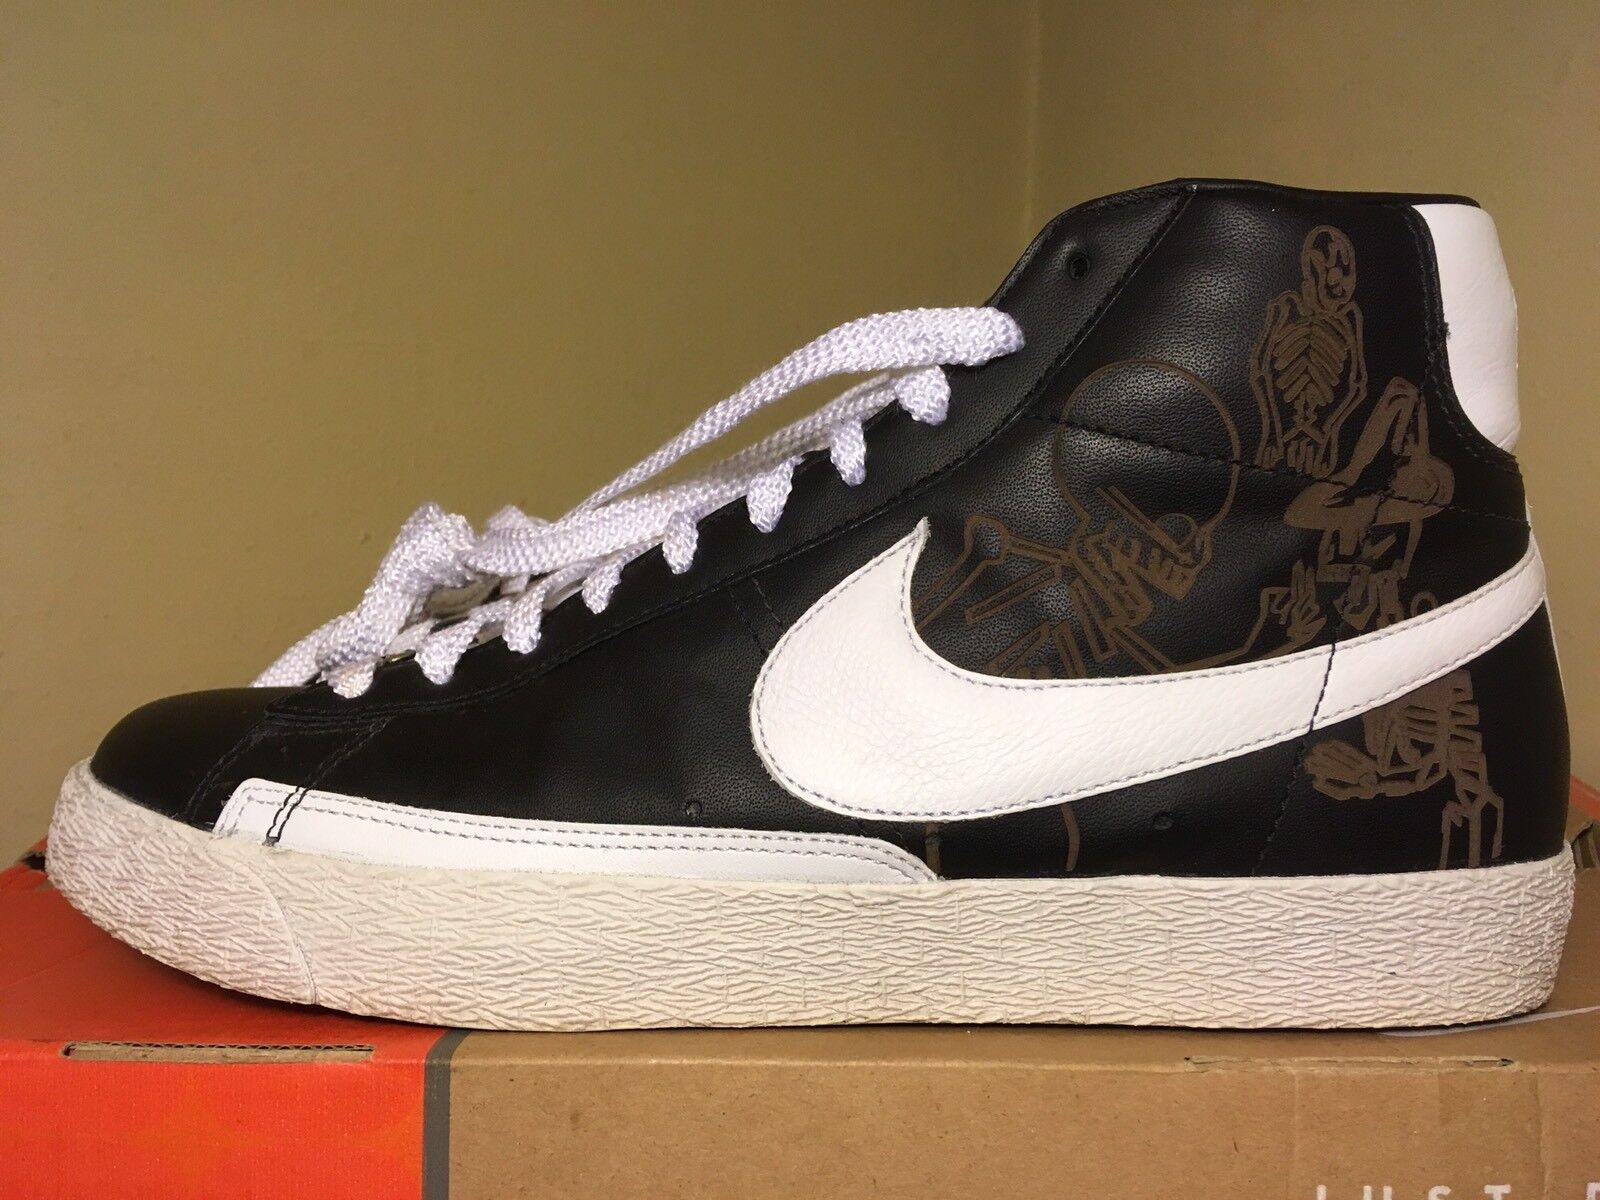 low priced 4abe0 b099c ... switzerland nike blazer high premium sz. en orng blk wht orng en blaze  100 autenticowild